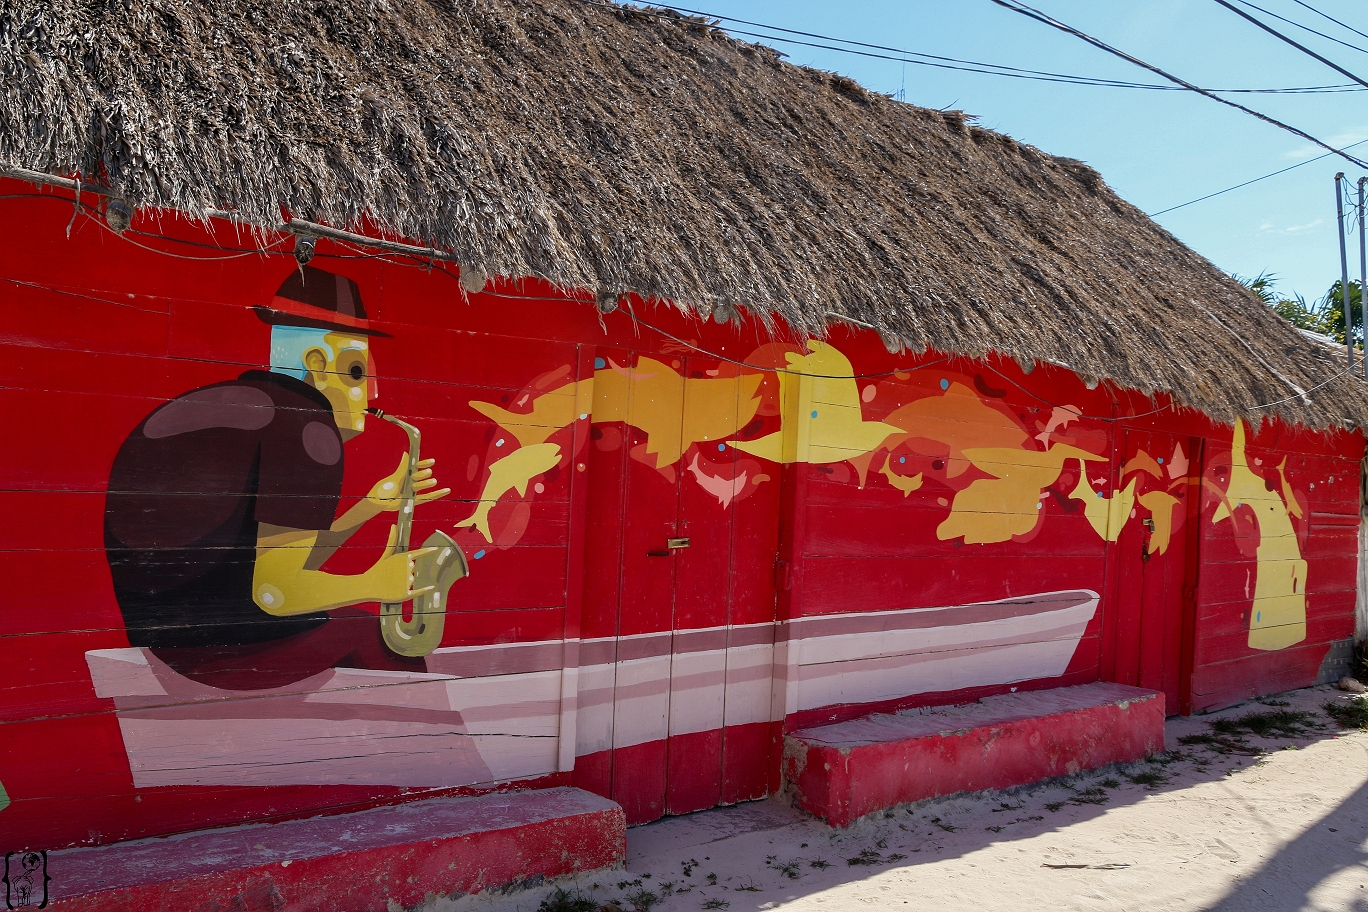 k-12 Art on Isla Holbox